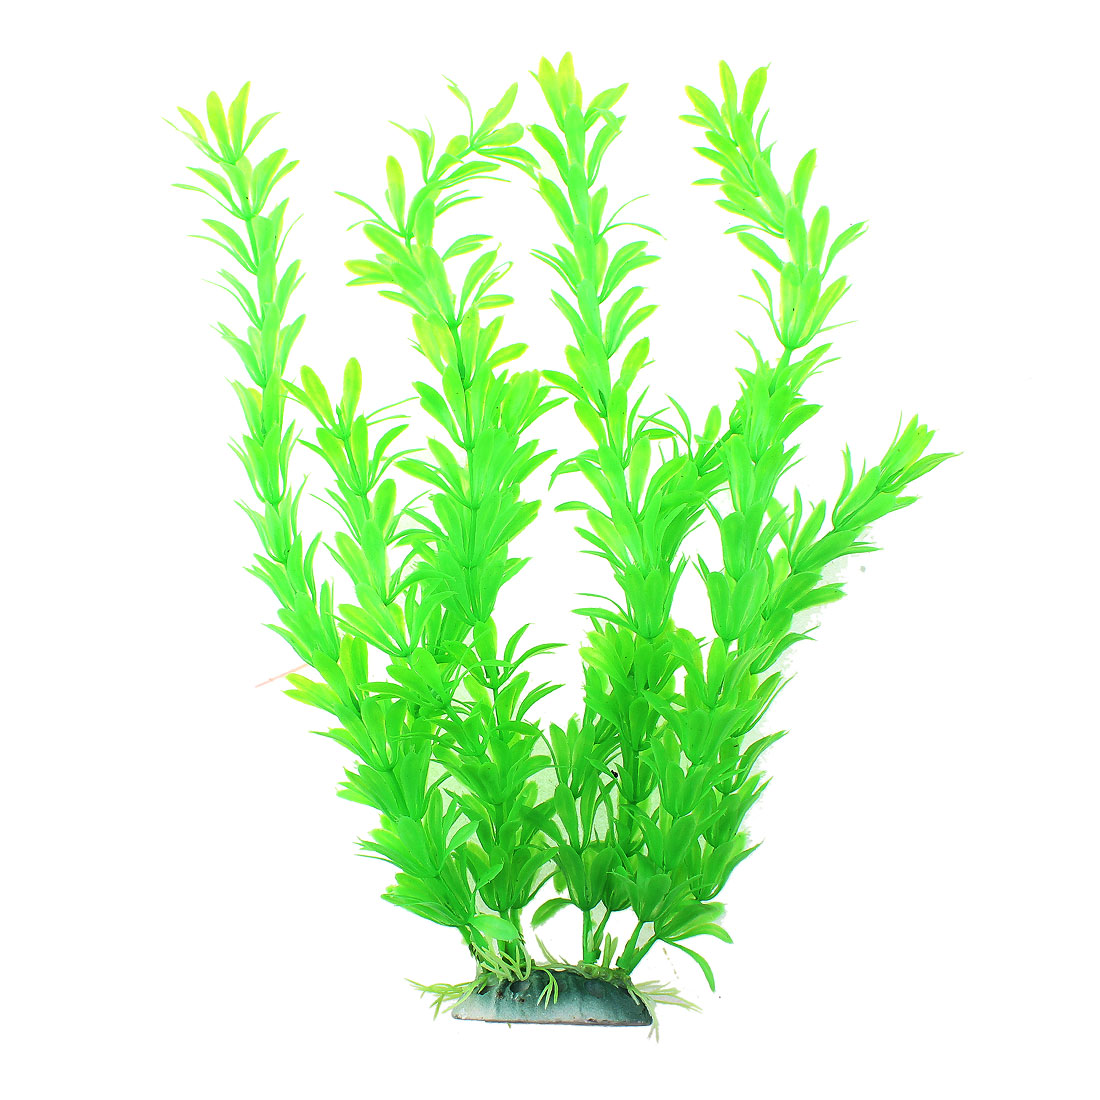 Aquarium Fish Tank Artificial Fake Plant Grass Decor Underwater Ornament Green